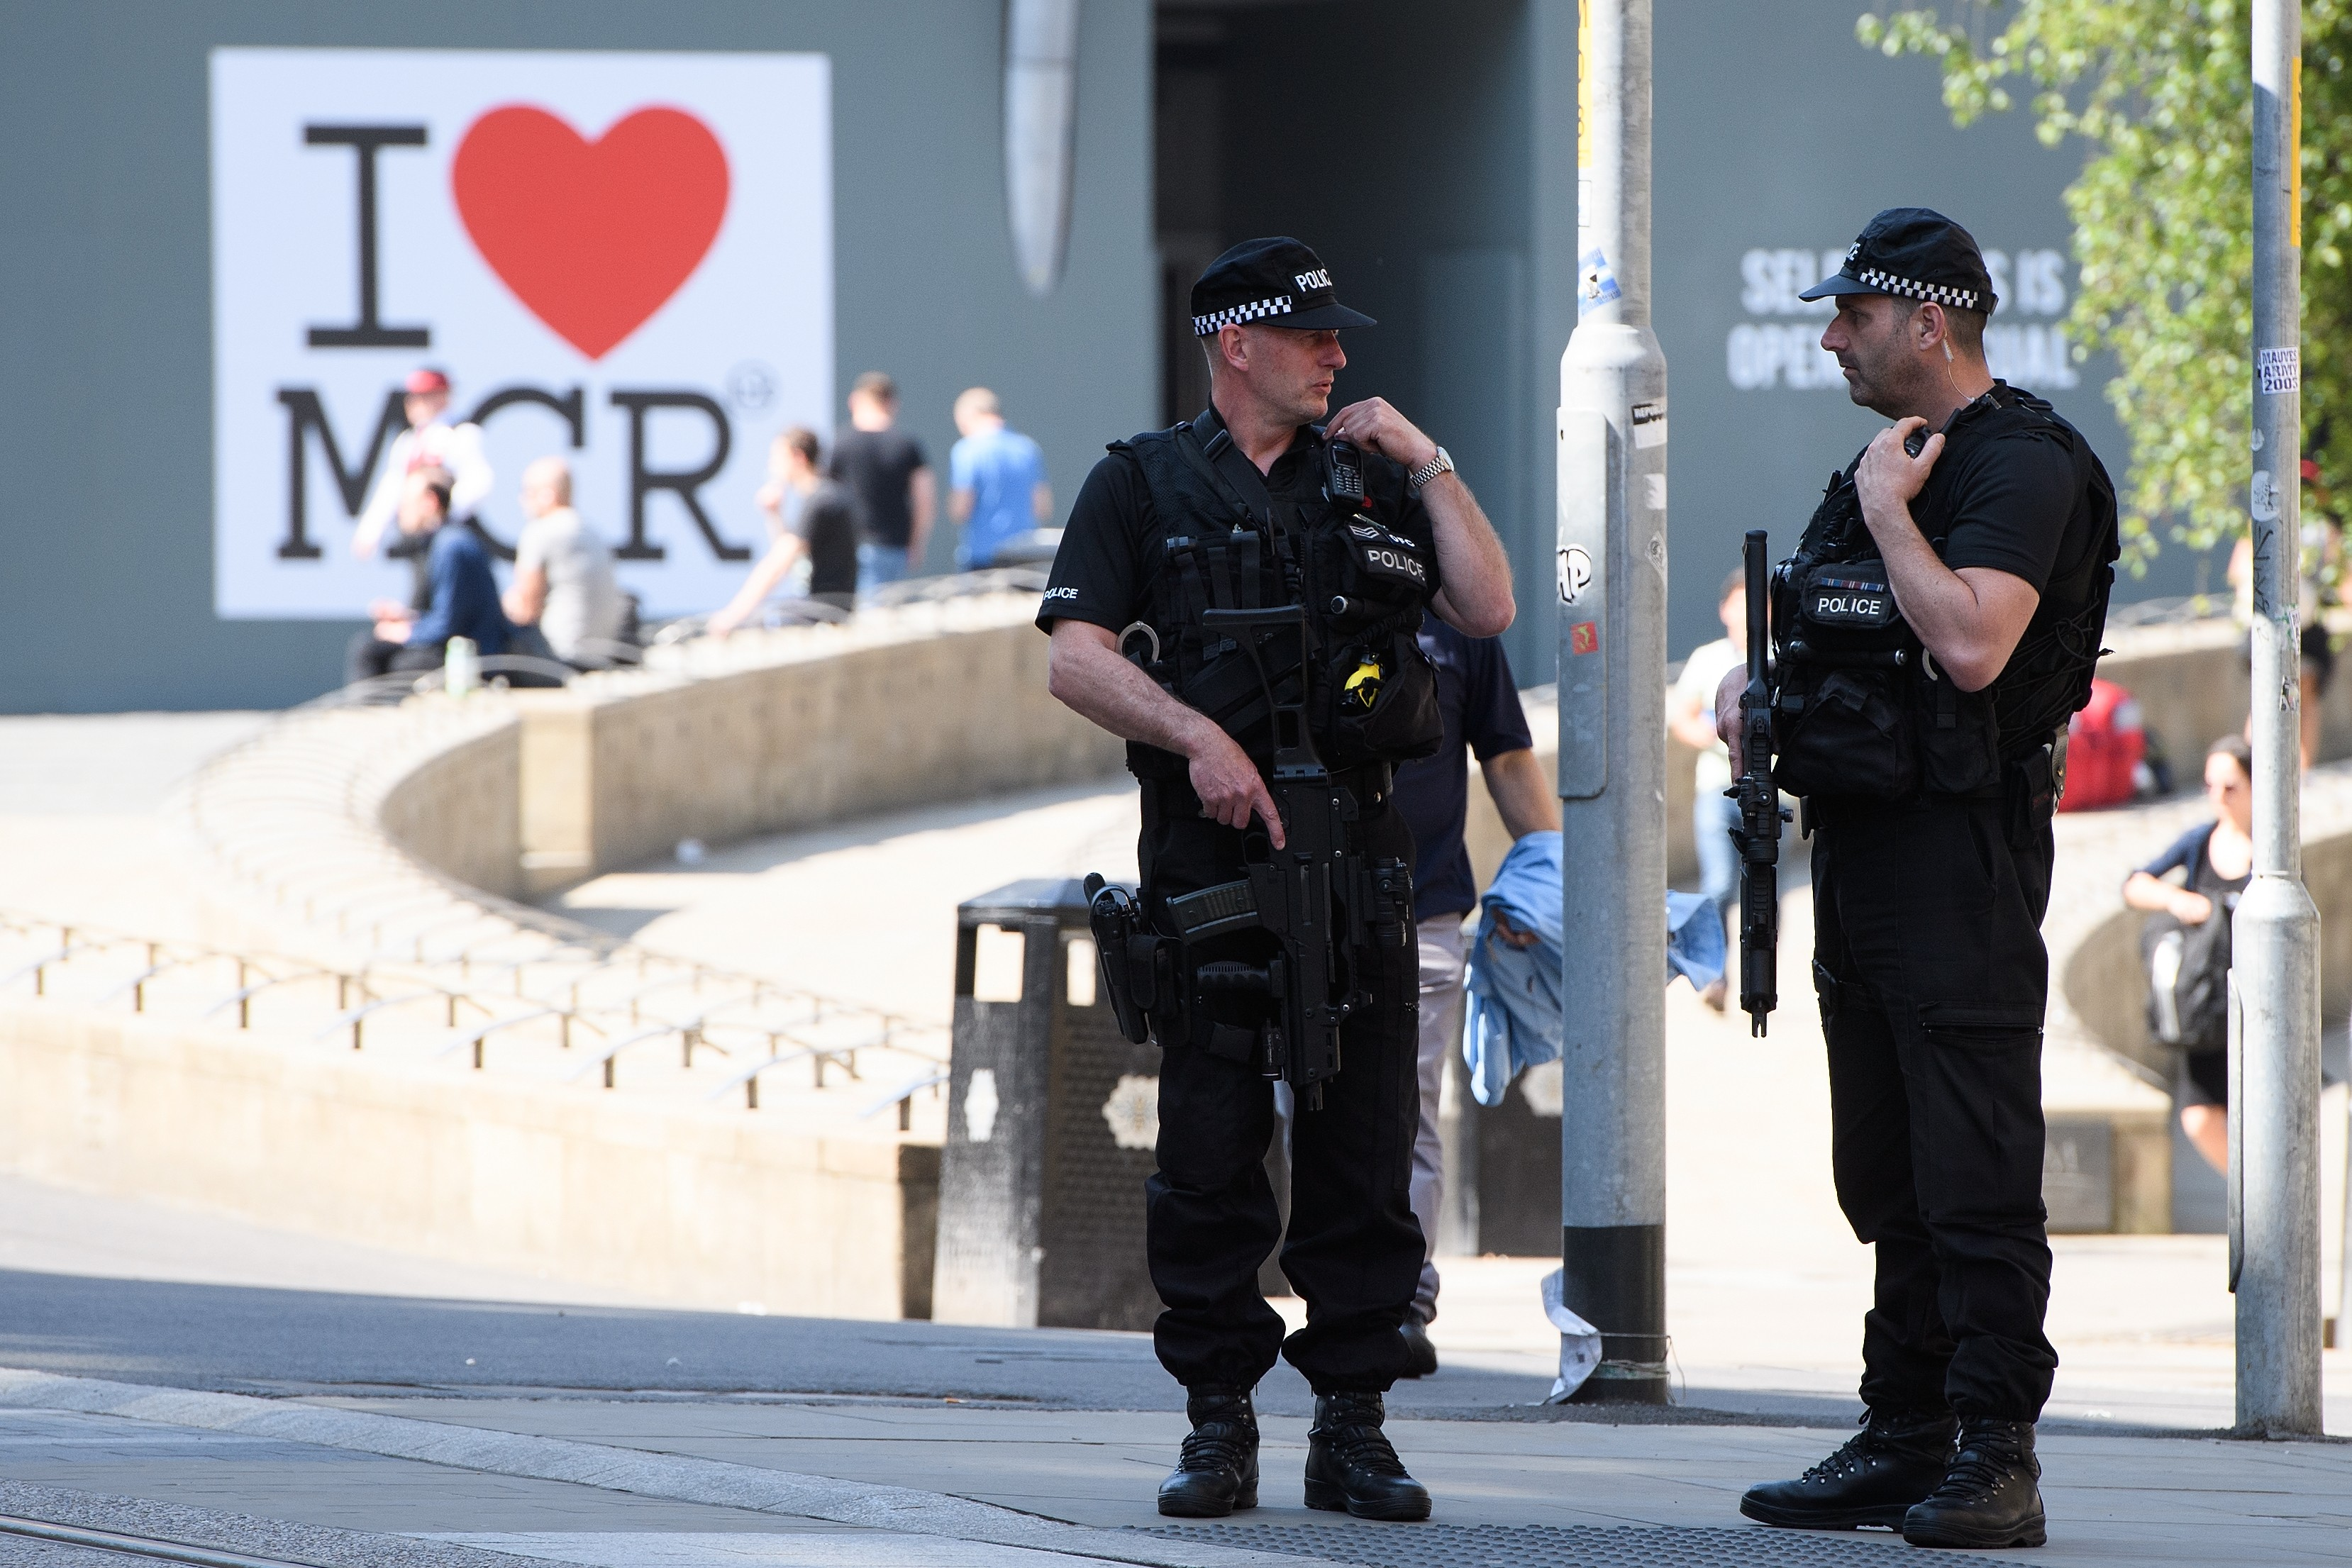 Manchester Observes A Minute Silence For The Victims Of The Manchester Arena Terrorist Attack